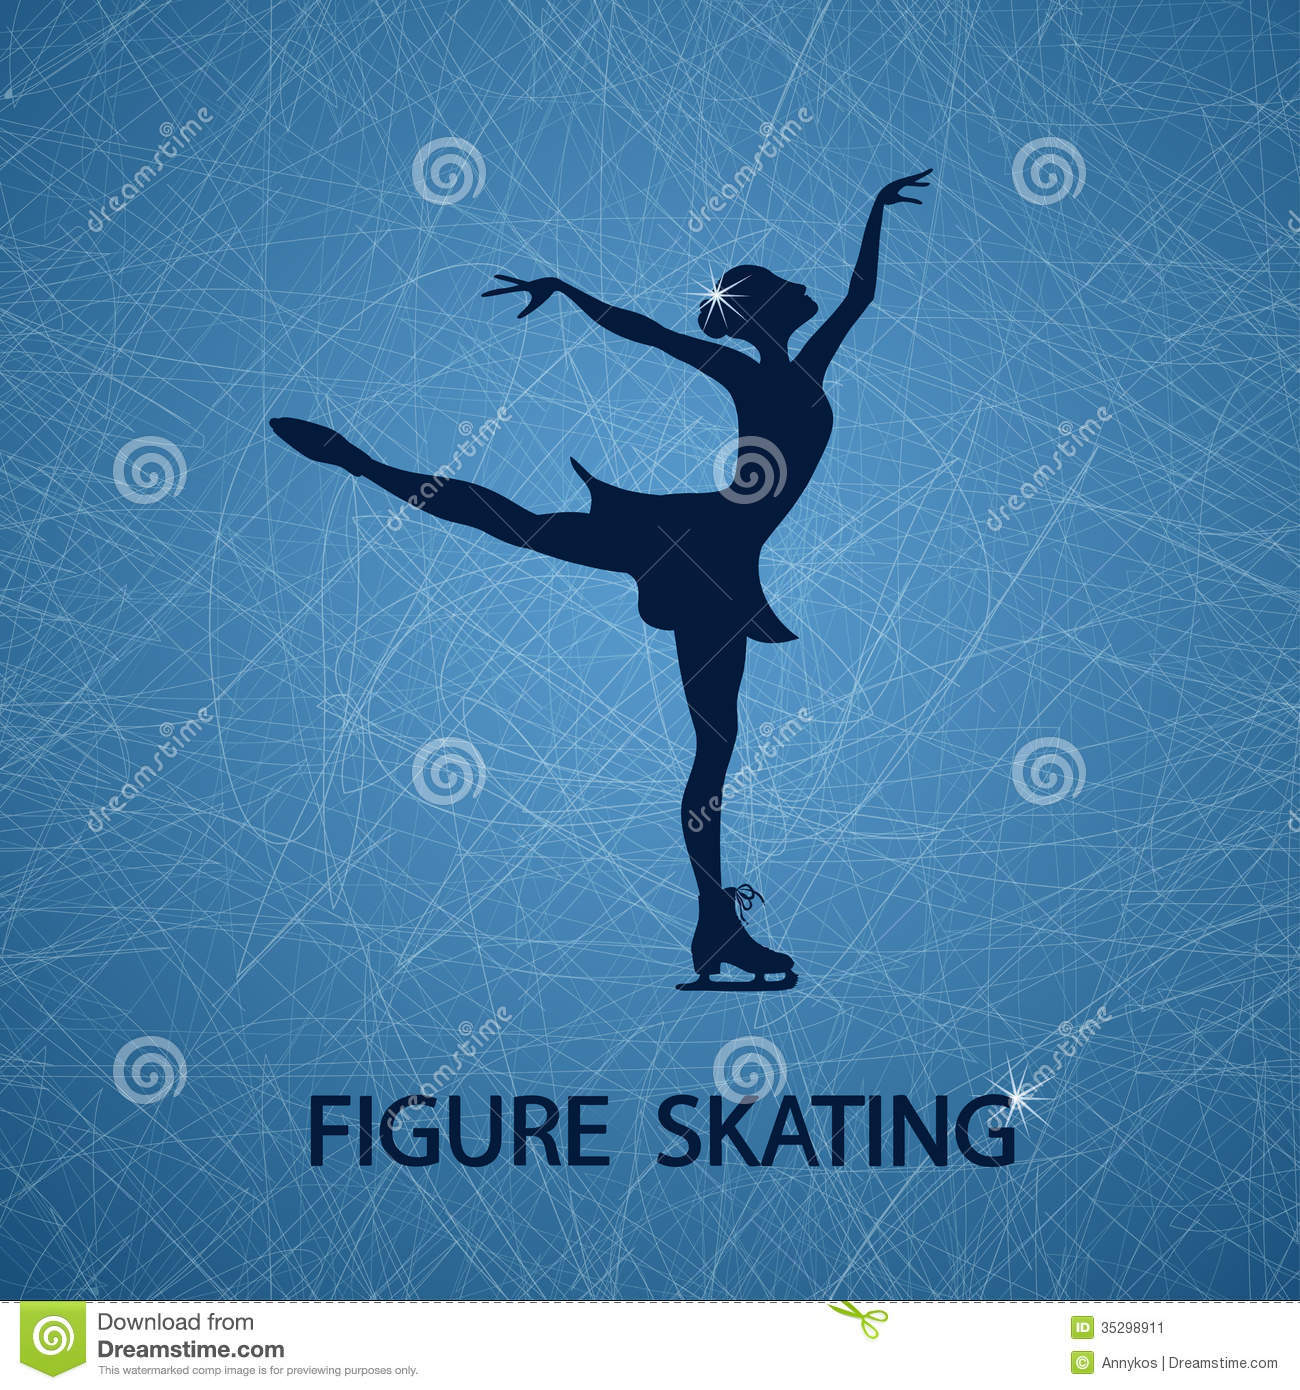 Figure skating powerpoint background